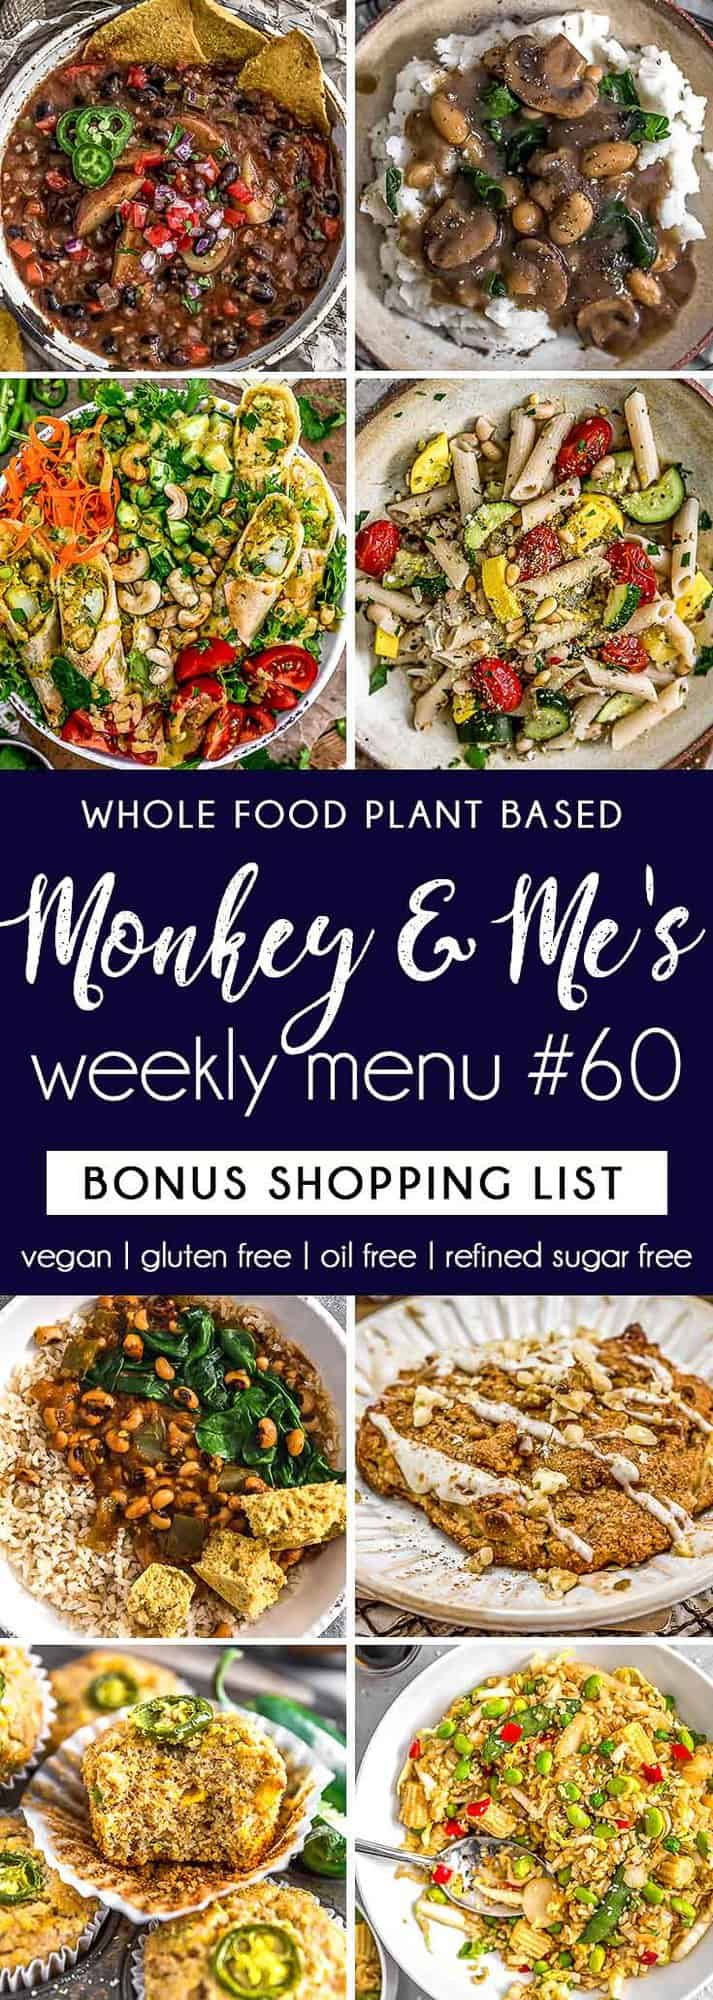 Monkey and Me's Menu 60 featuring 8 recipes